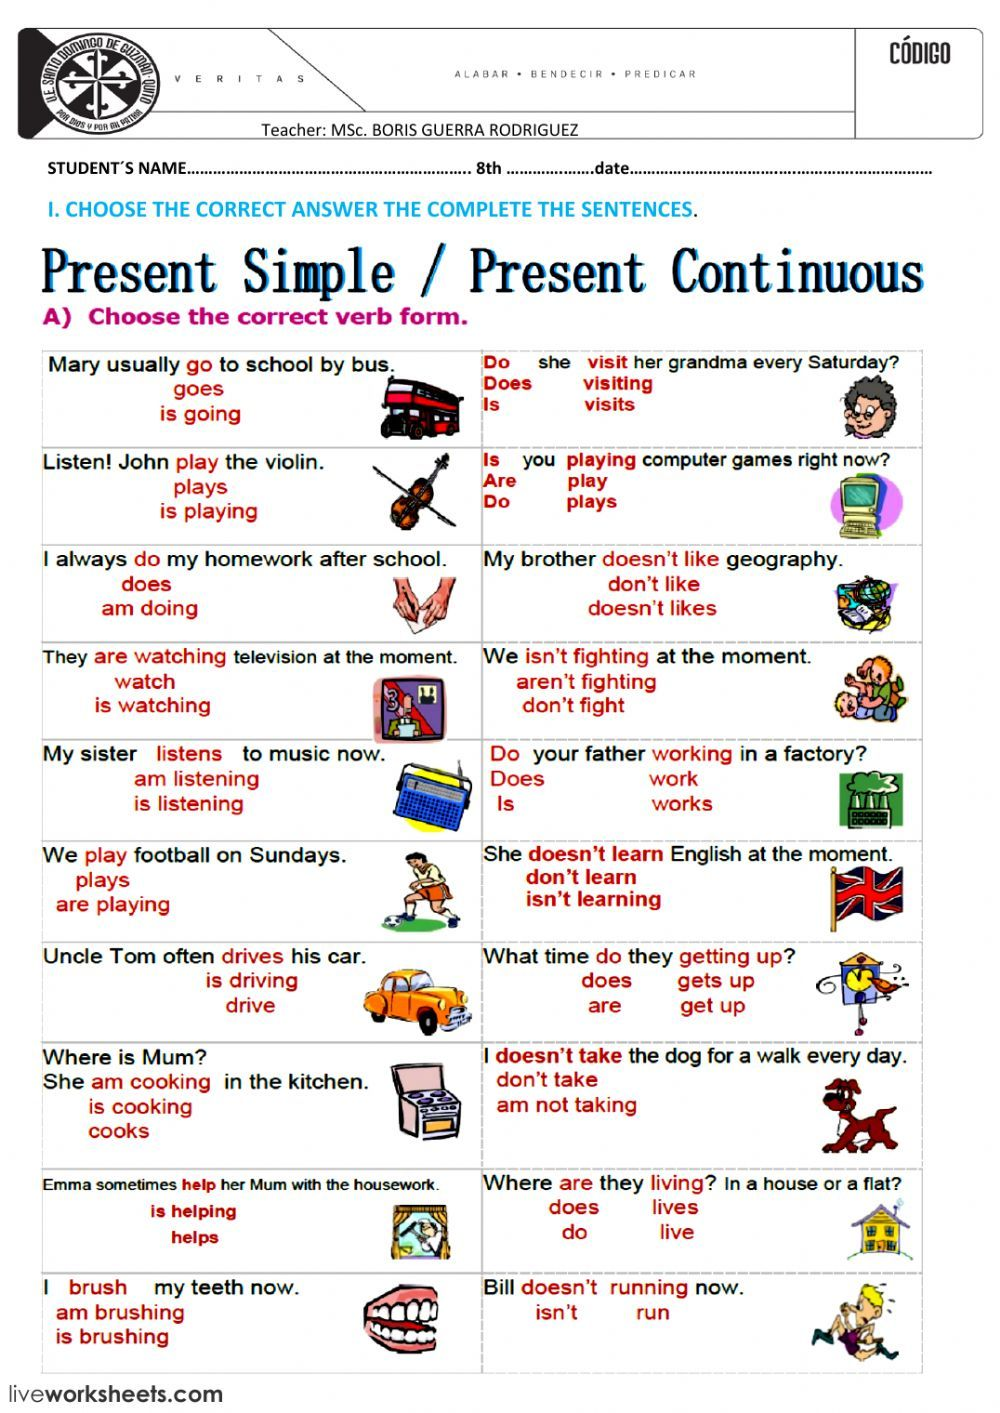 PRESENT SIMPLE AND CONTINUOUS interactive and downloadable